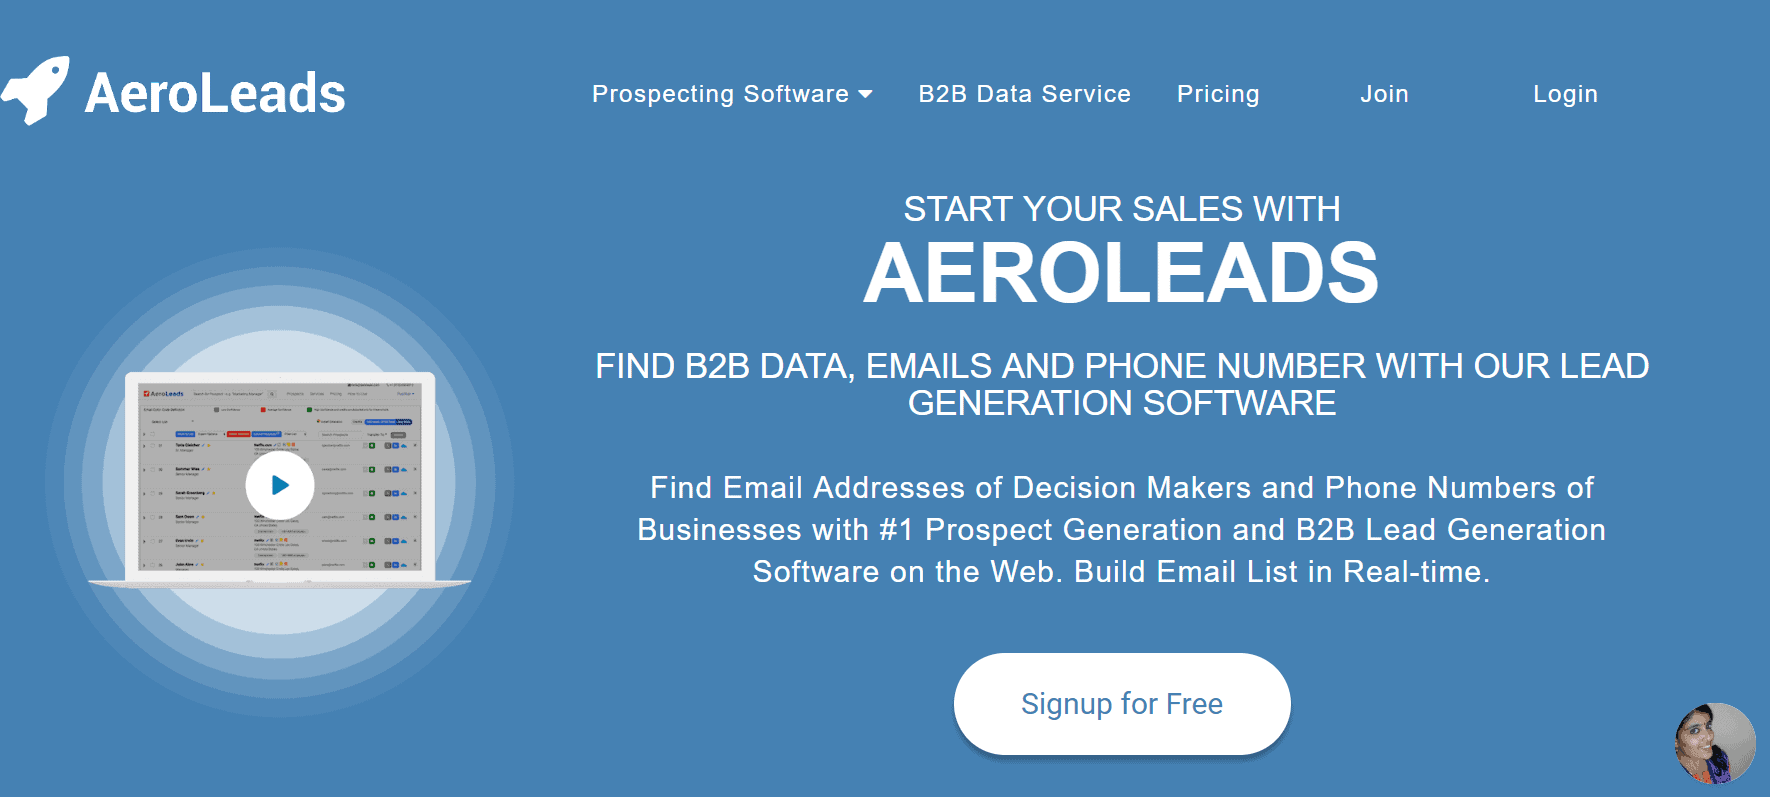 outil lead generation b2b aeroleads